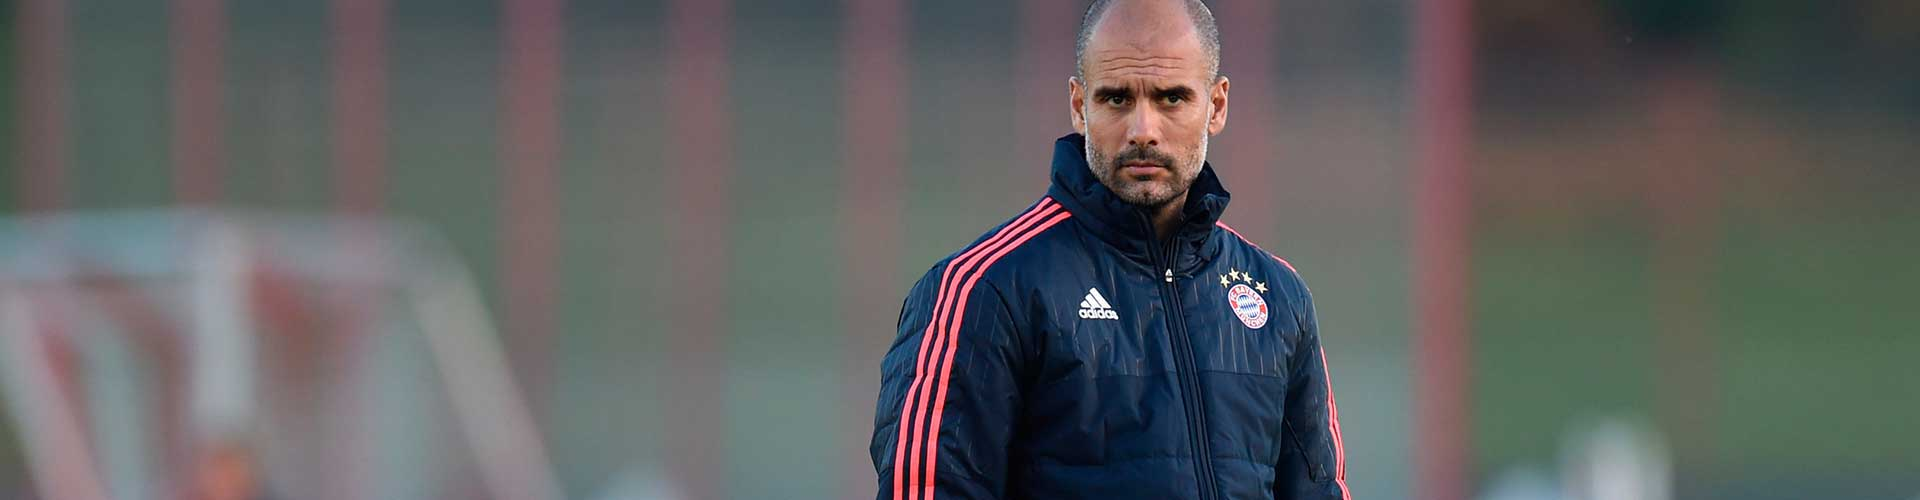 Will Pep Guardiola fail in England?